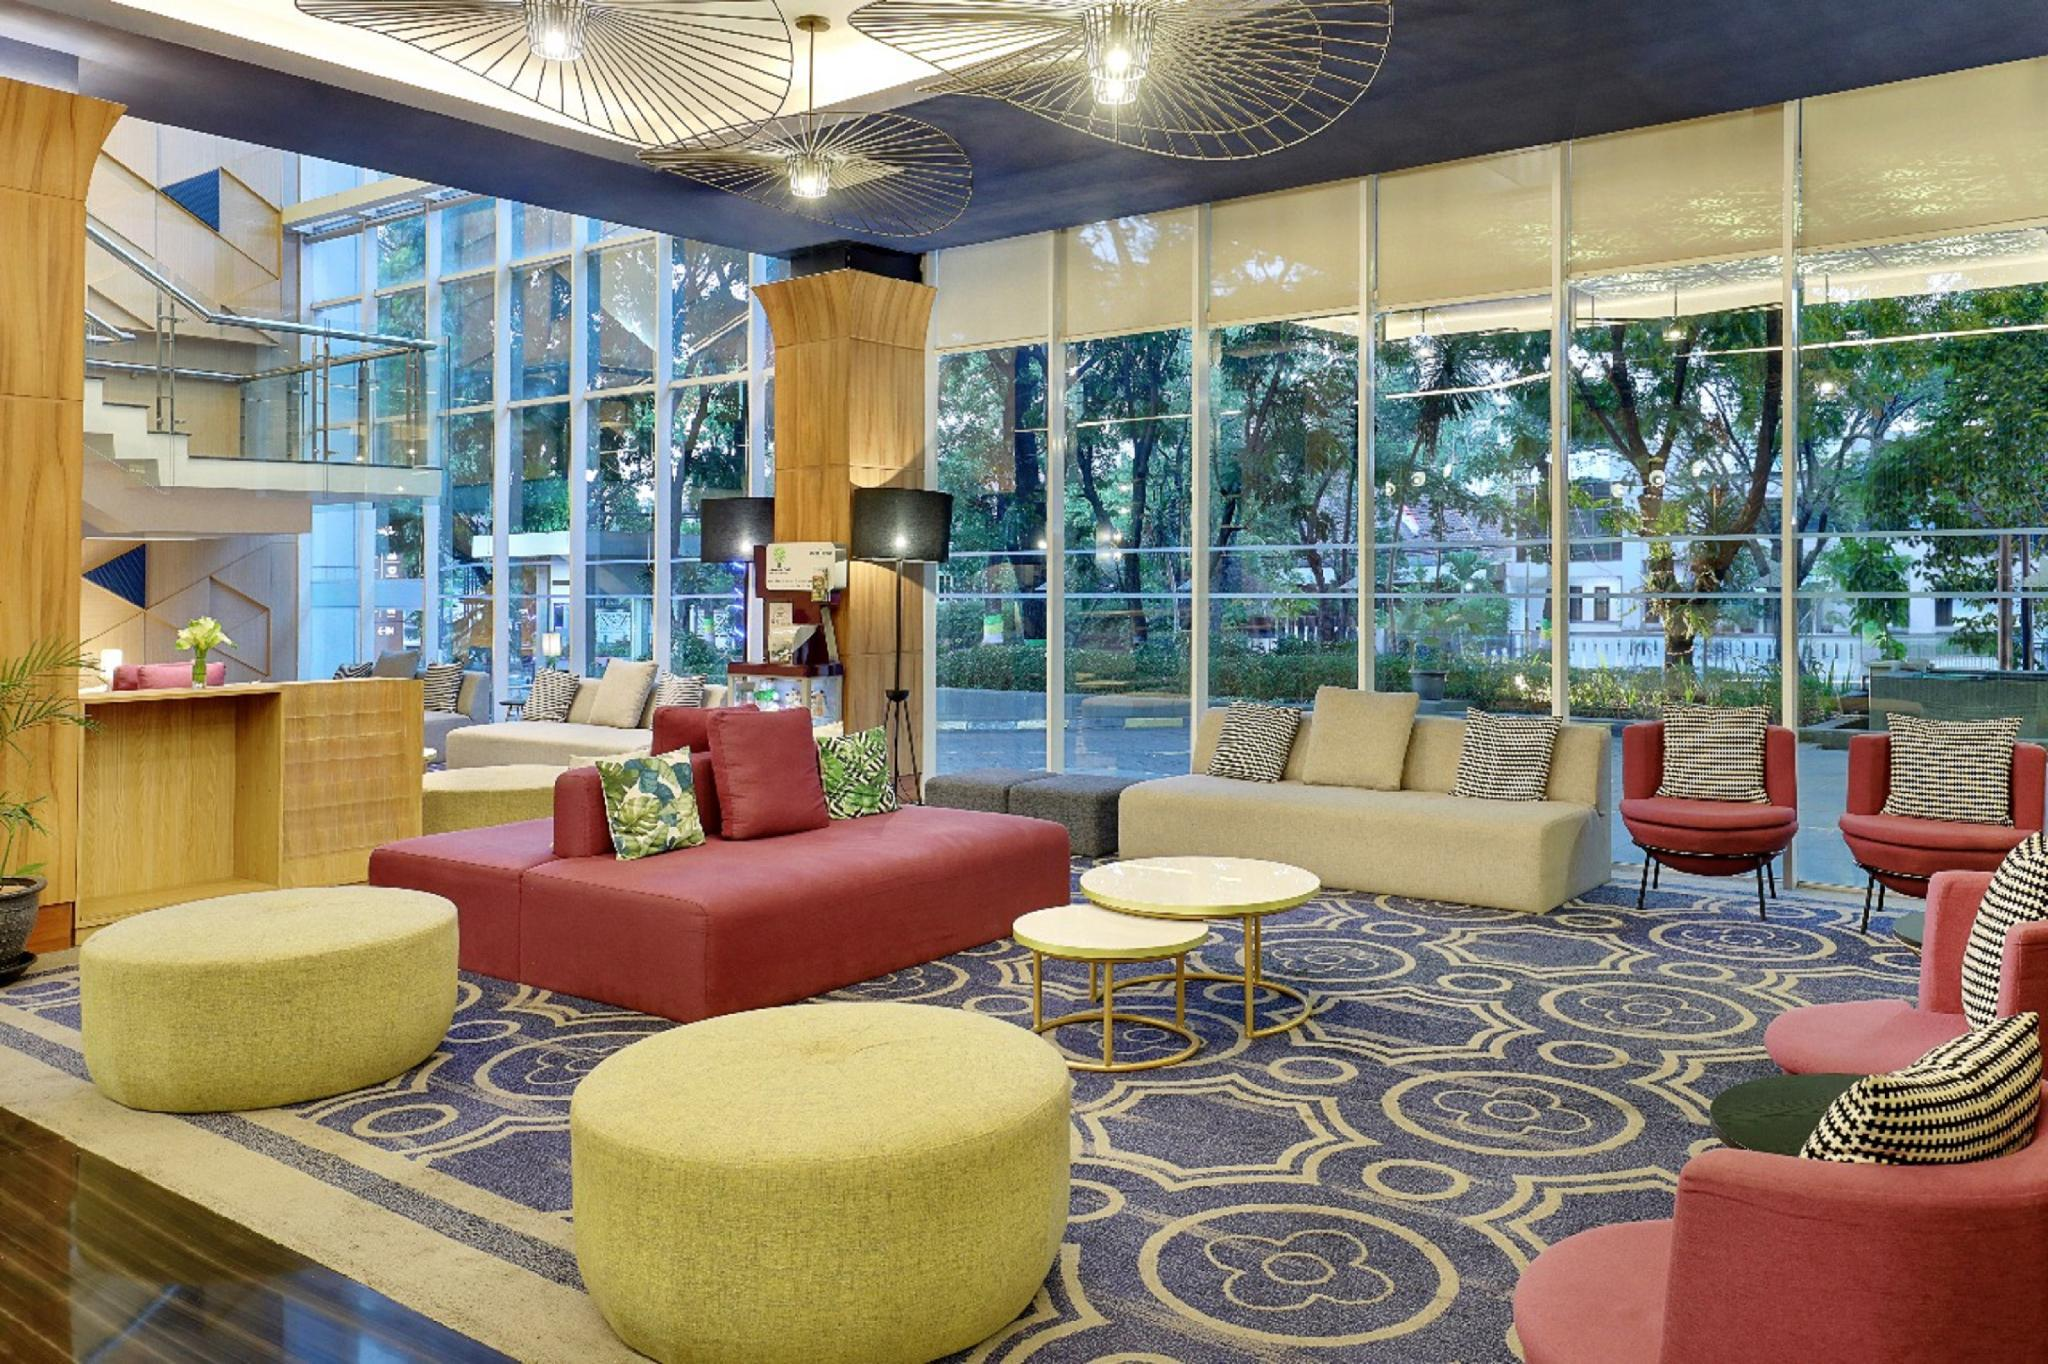 Mercure Bandung Nexa Supratman Hotel - Deals, Photos & Reviews